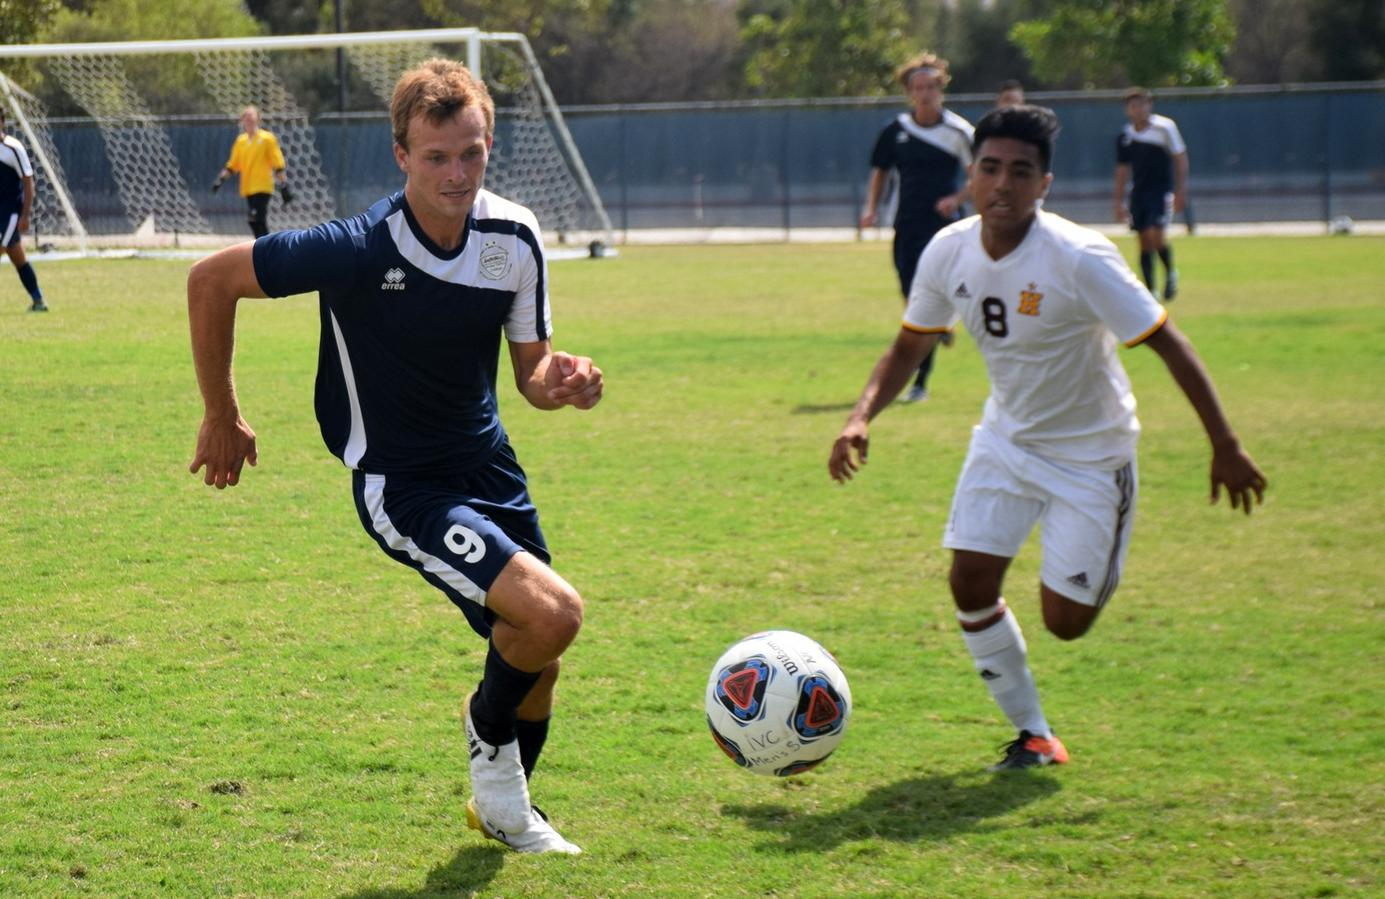 Men's soccer team finishes week strong, shuts out Hartnell